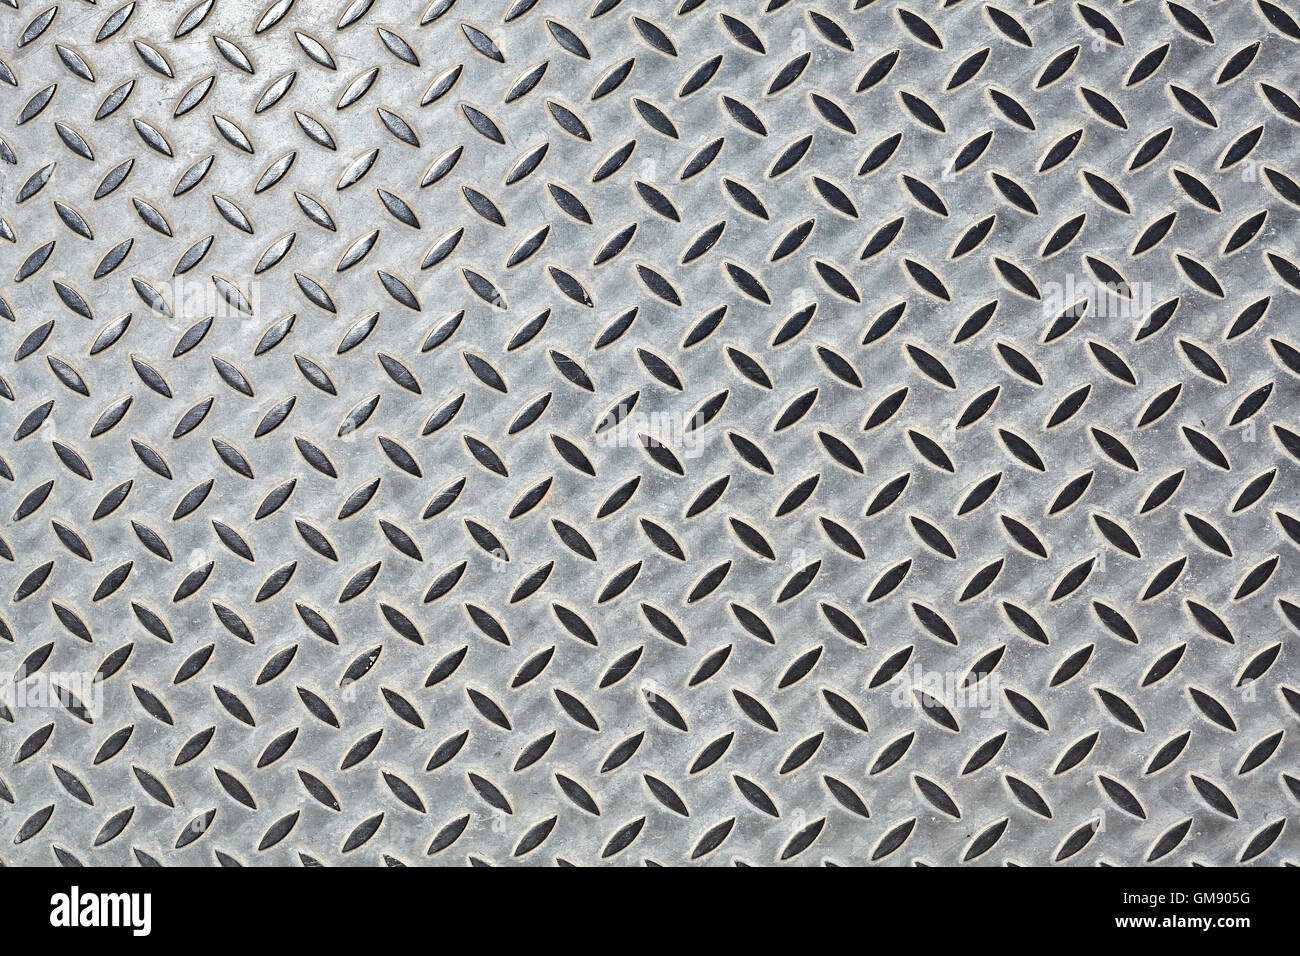 Steel floor pattern, background or texture. - Stock Image